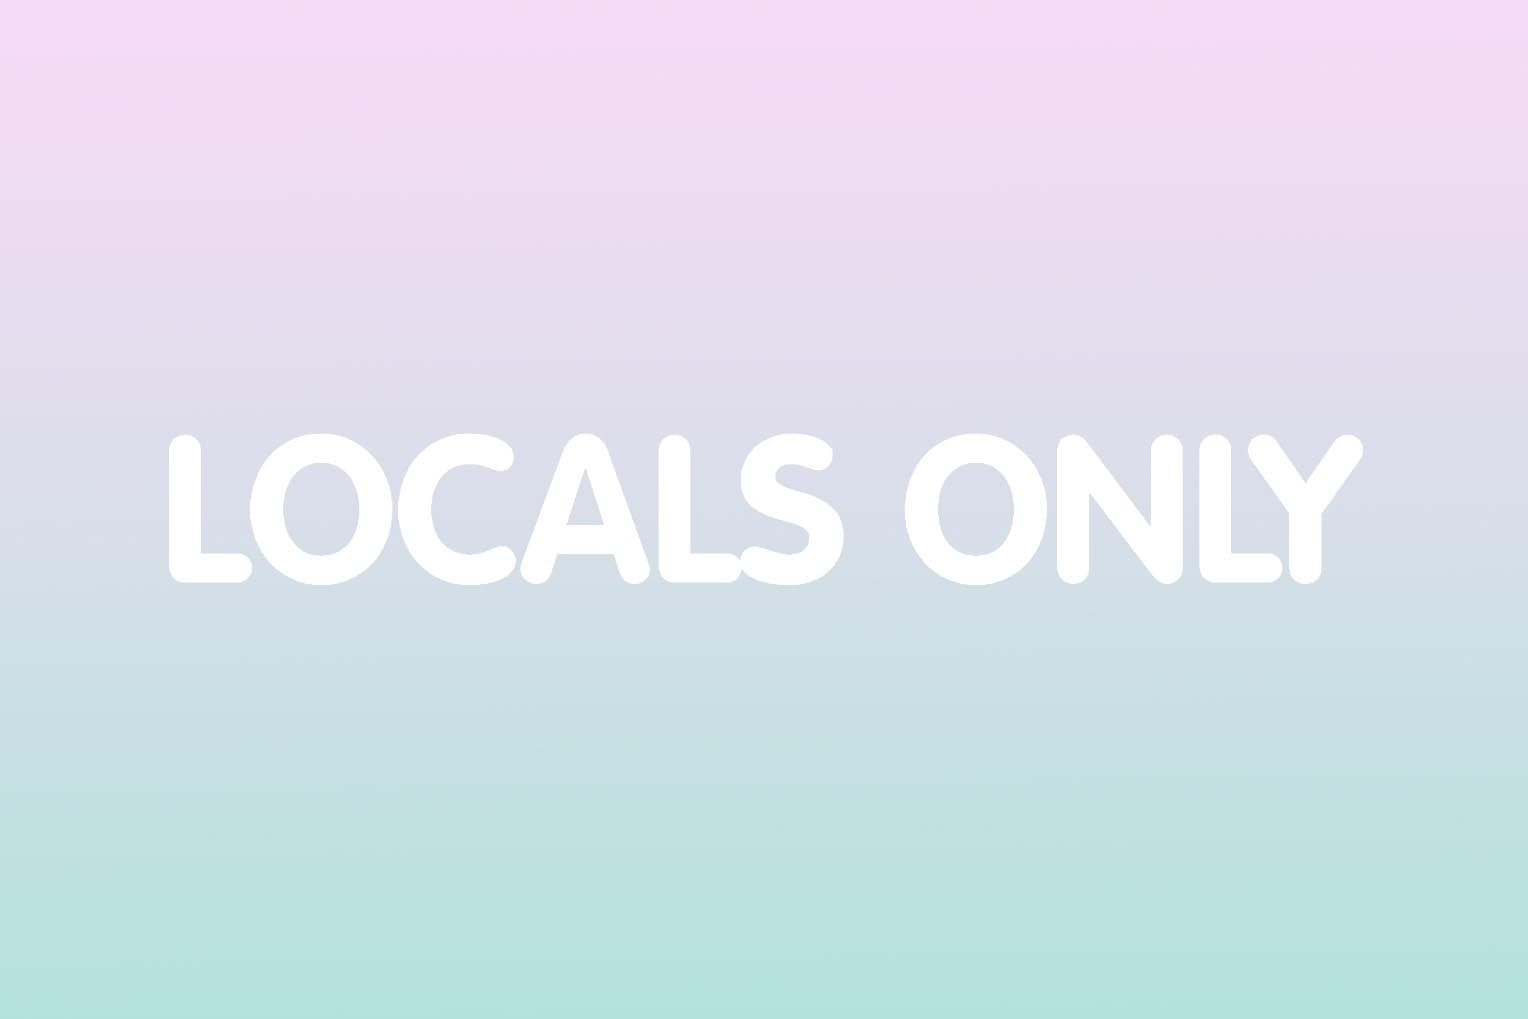 Visiting the area or live locally? Click and collect now available!